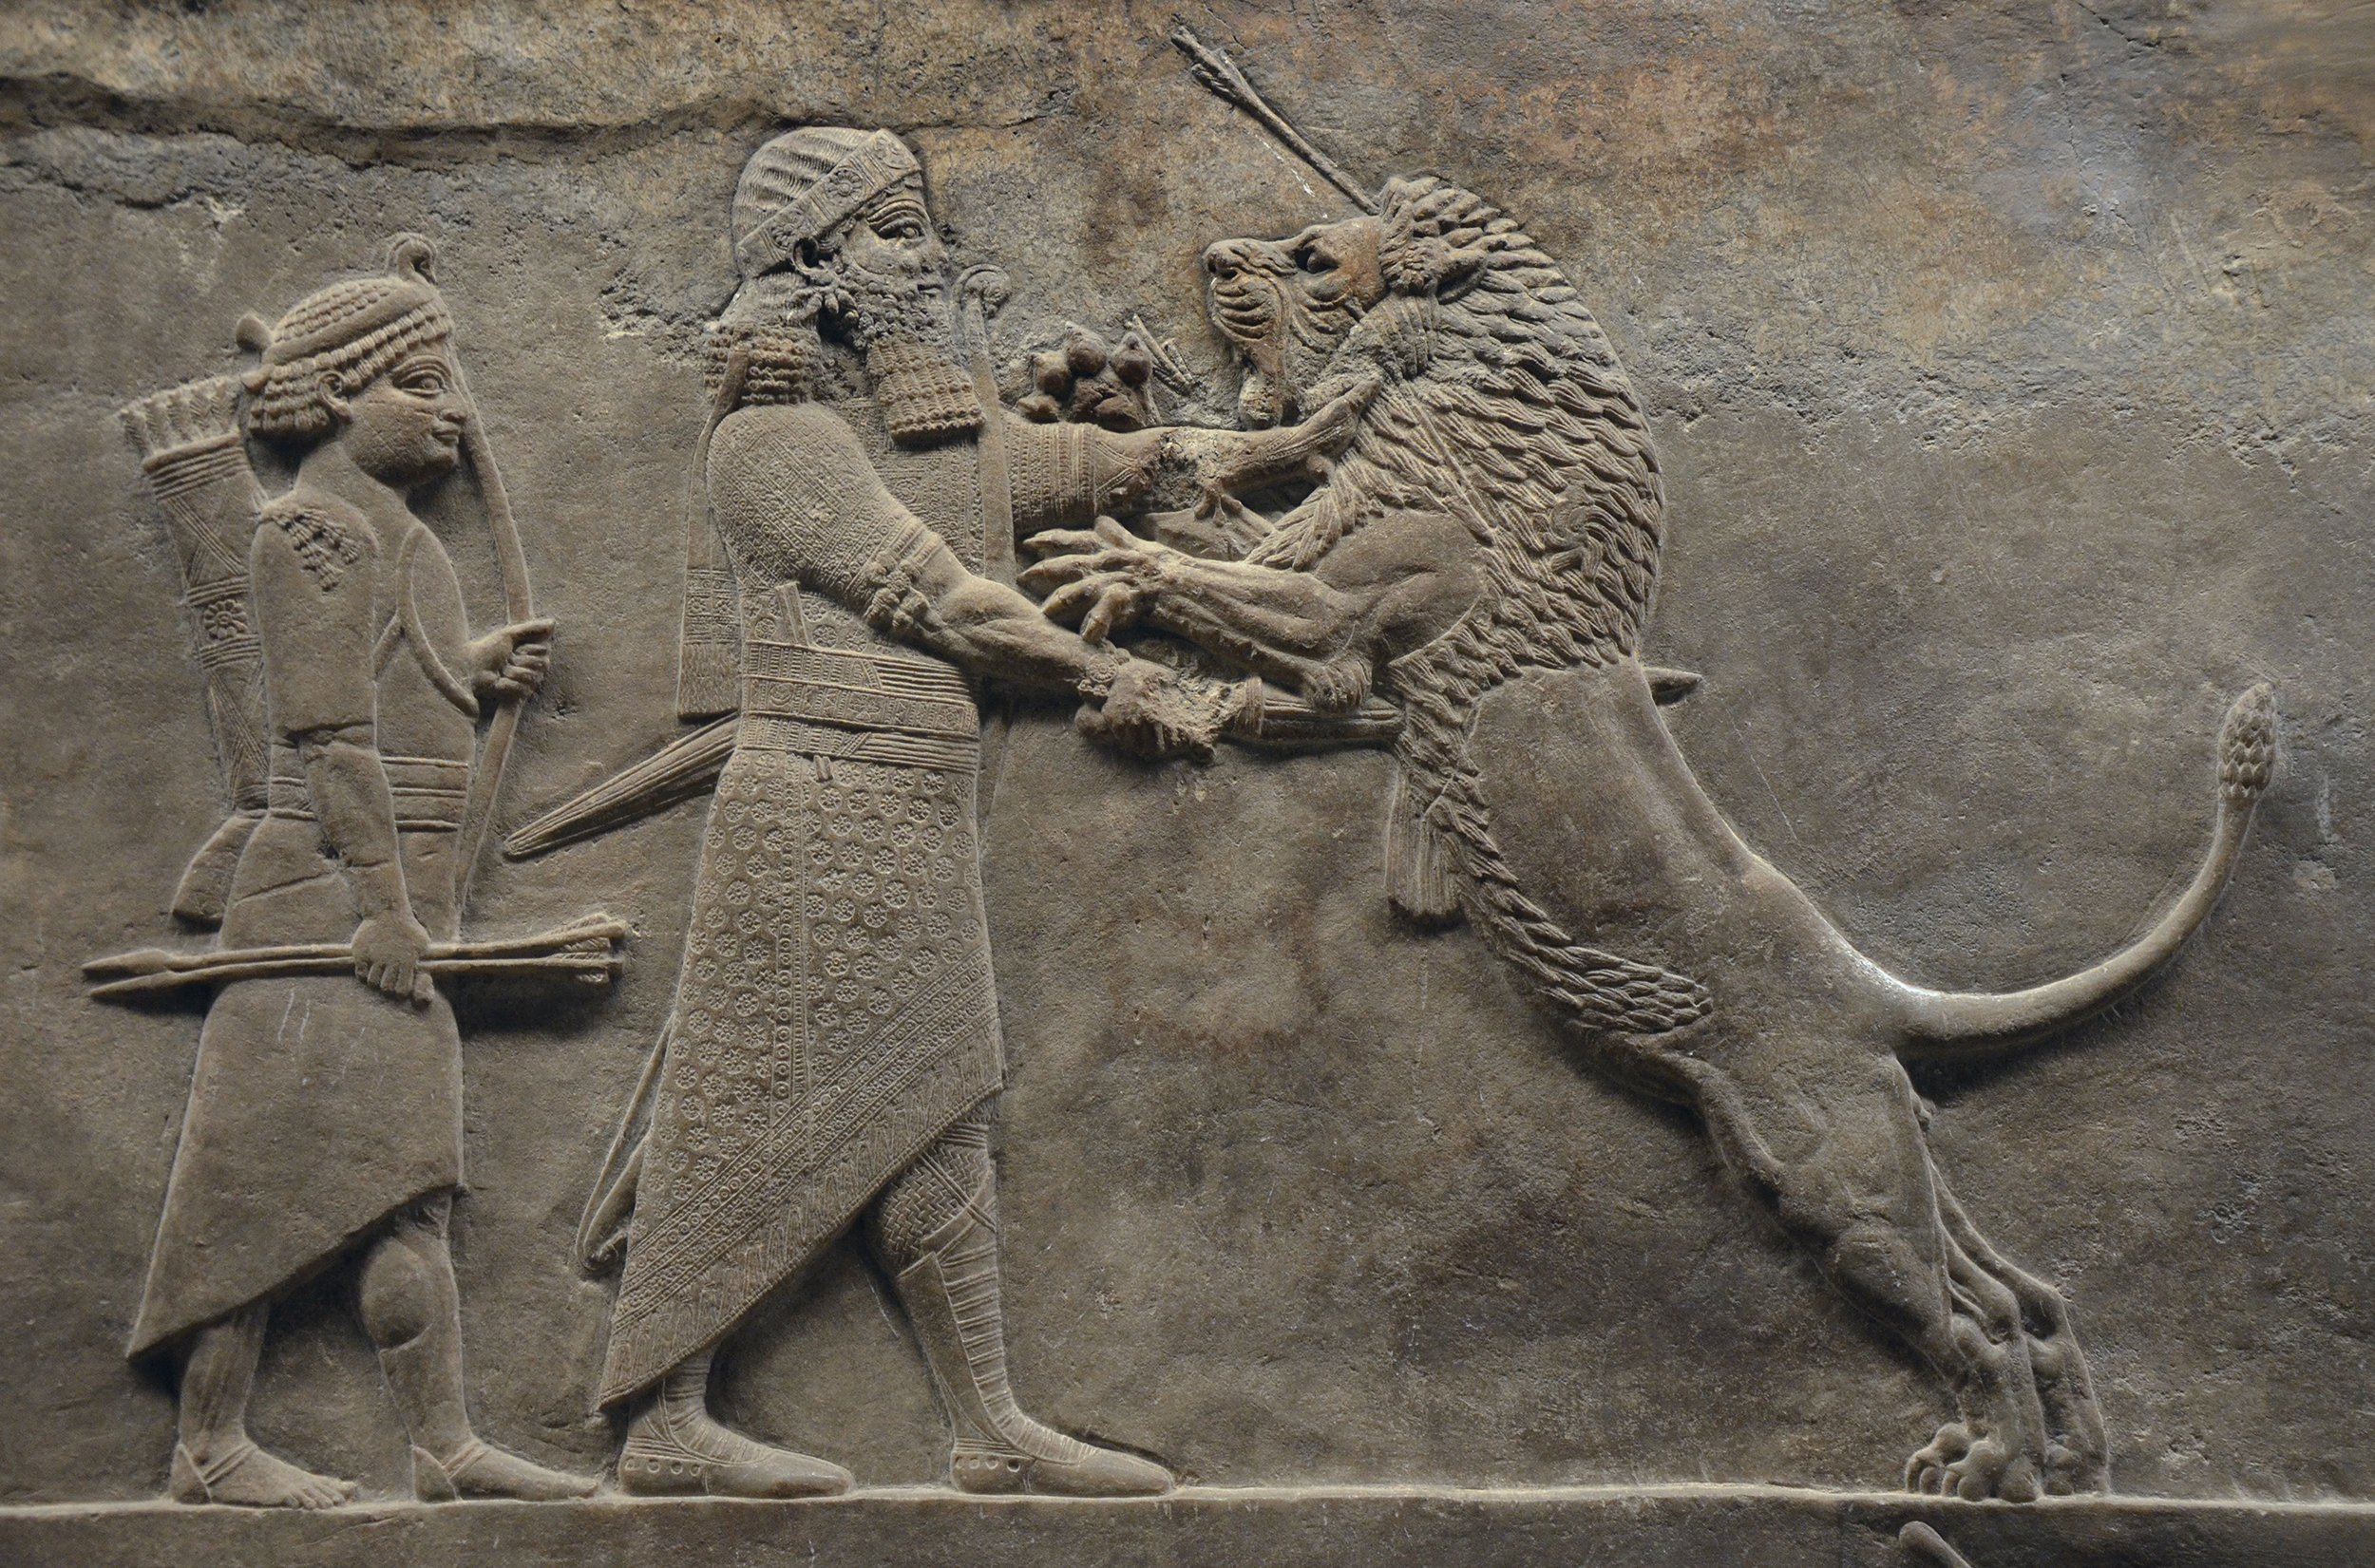 A relief showing King Ashurbanipal of Assyria (now northern Iraq), c. 645-635 B.C. In addition to his lion-fighting prowess, Ashurbanipal was also famed for building what many scholars consider the first true library.